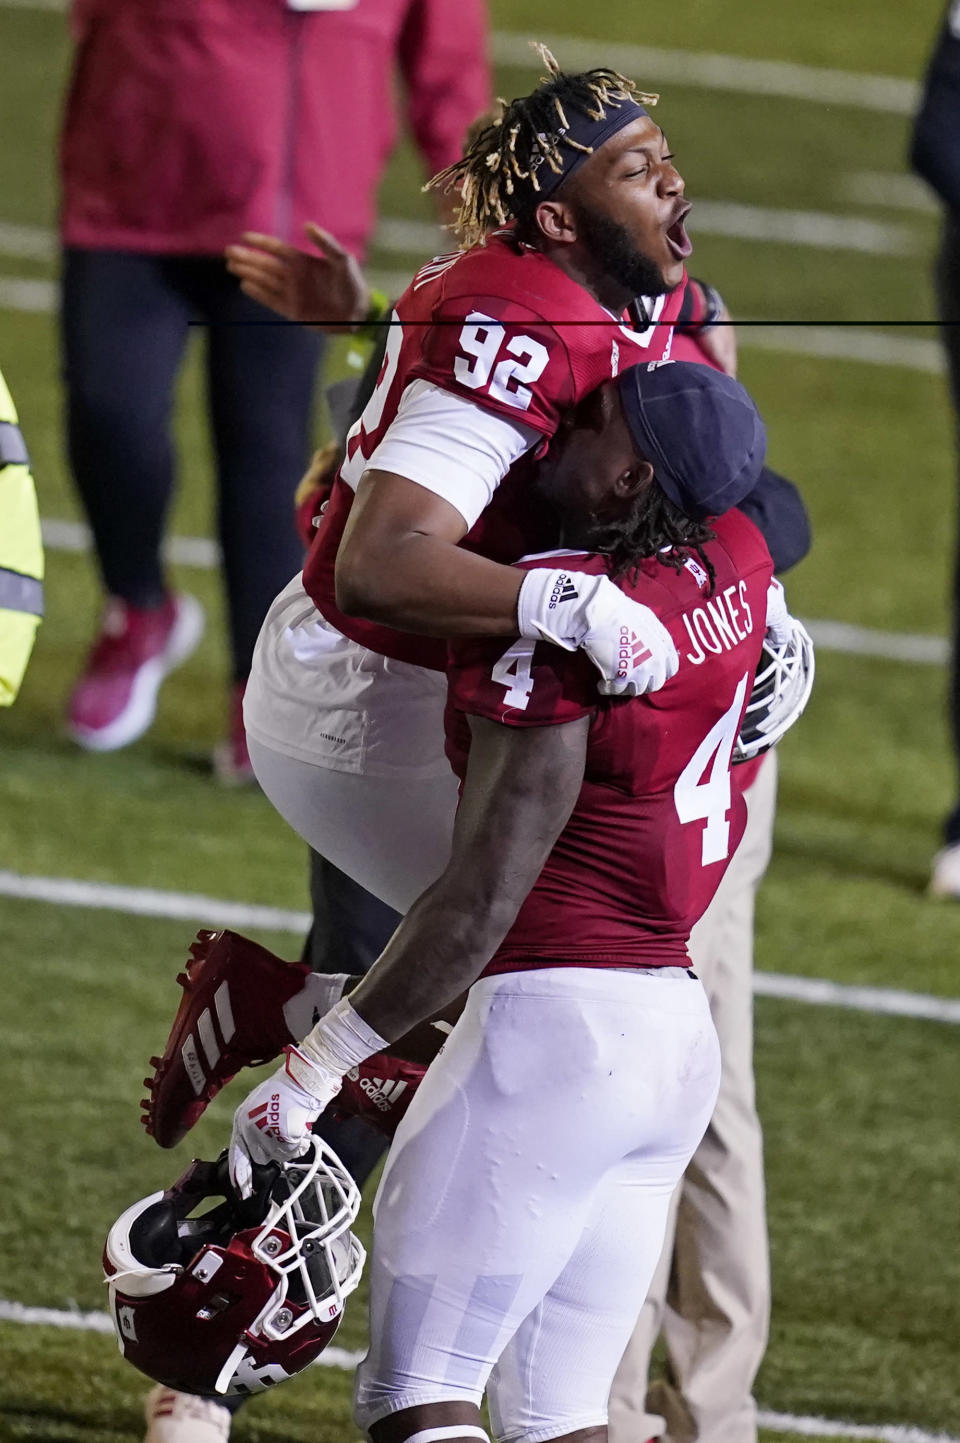 Indiana's Alfred Bryant (92) and Cam Jones celebrate after Indiana defeated Penn State in overtime of an NCAA college football game, Saturday, Oct. 24, 2020, in Bloomington, Ind. Indiana won 36-35 in overtime. (AP Photo/Darron Cummings)